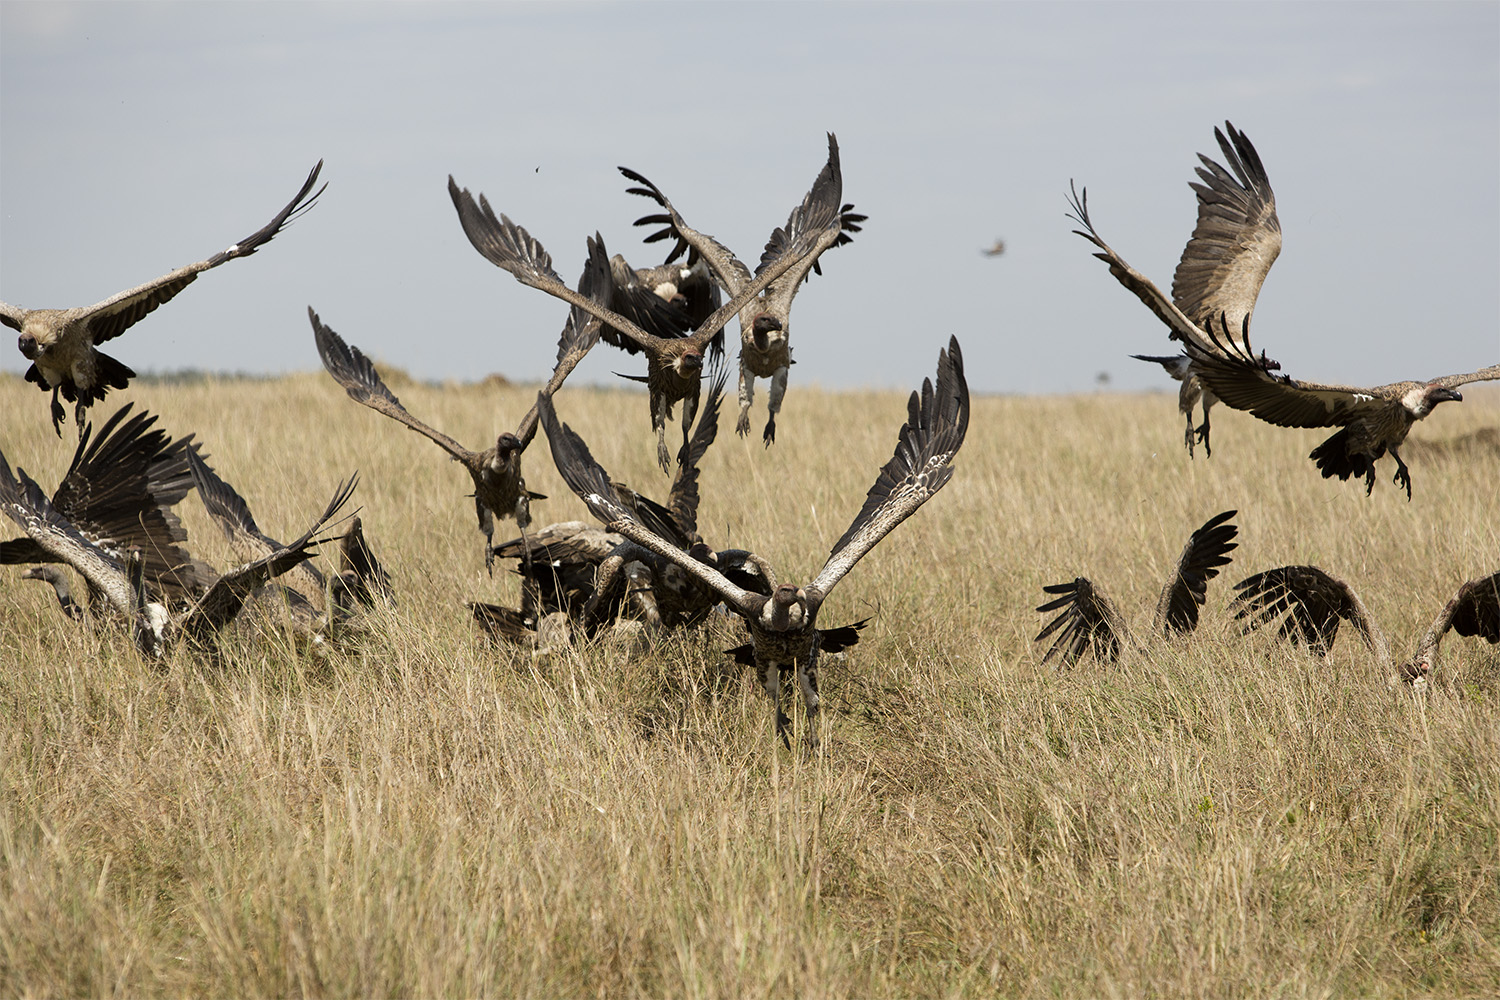 Vultures fly